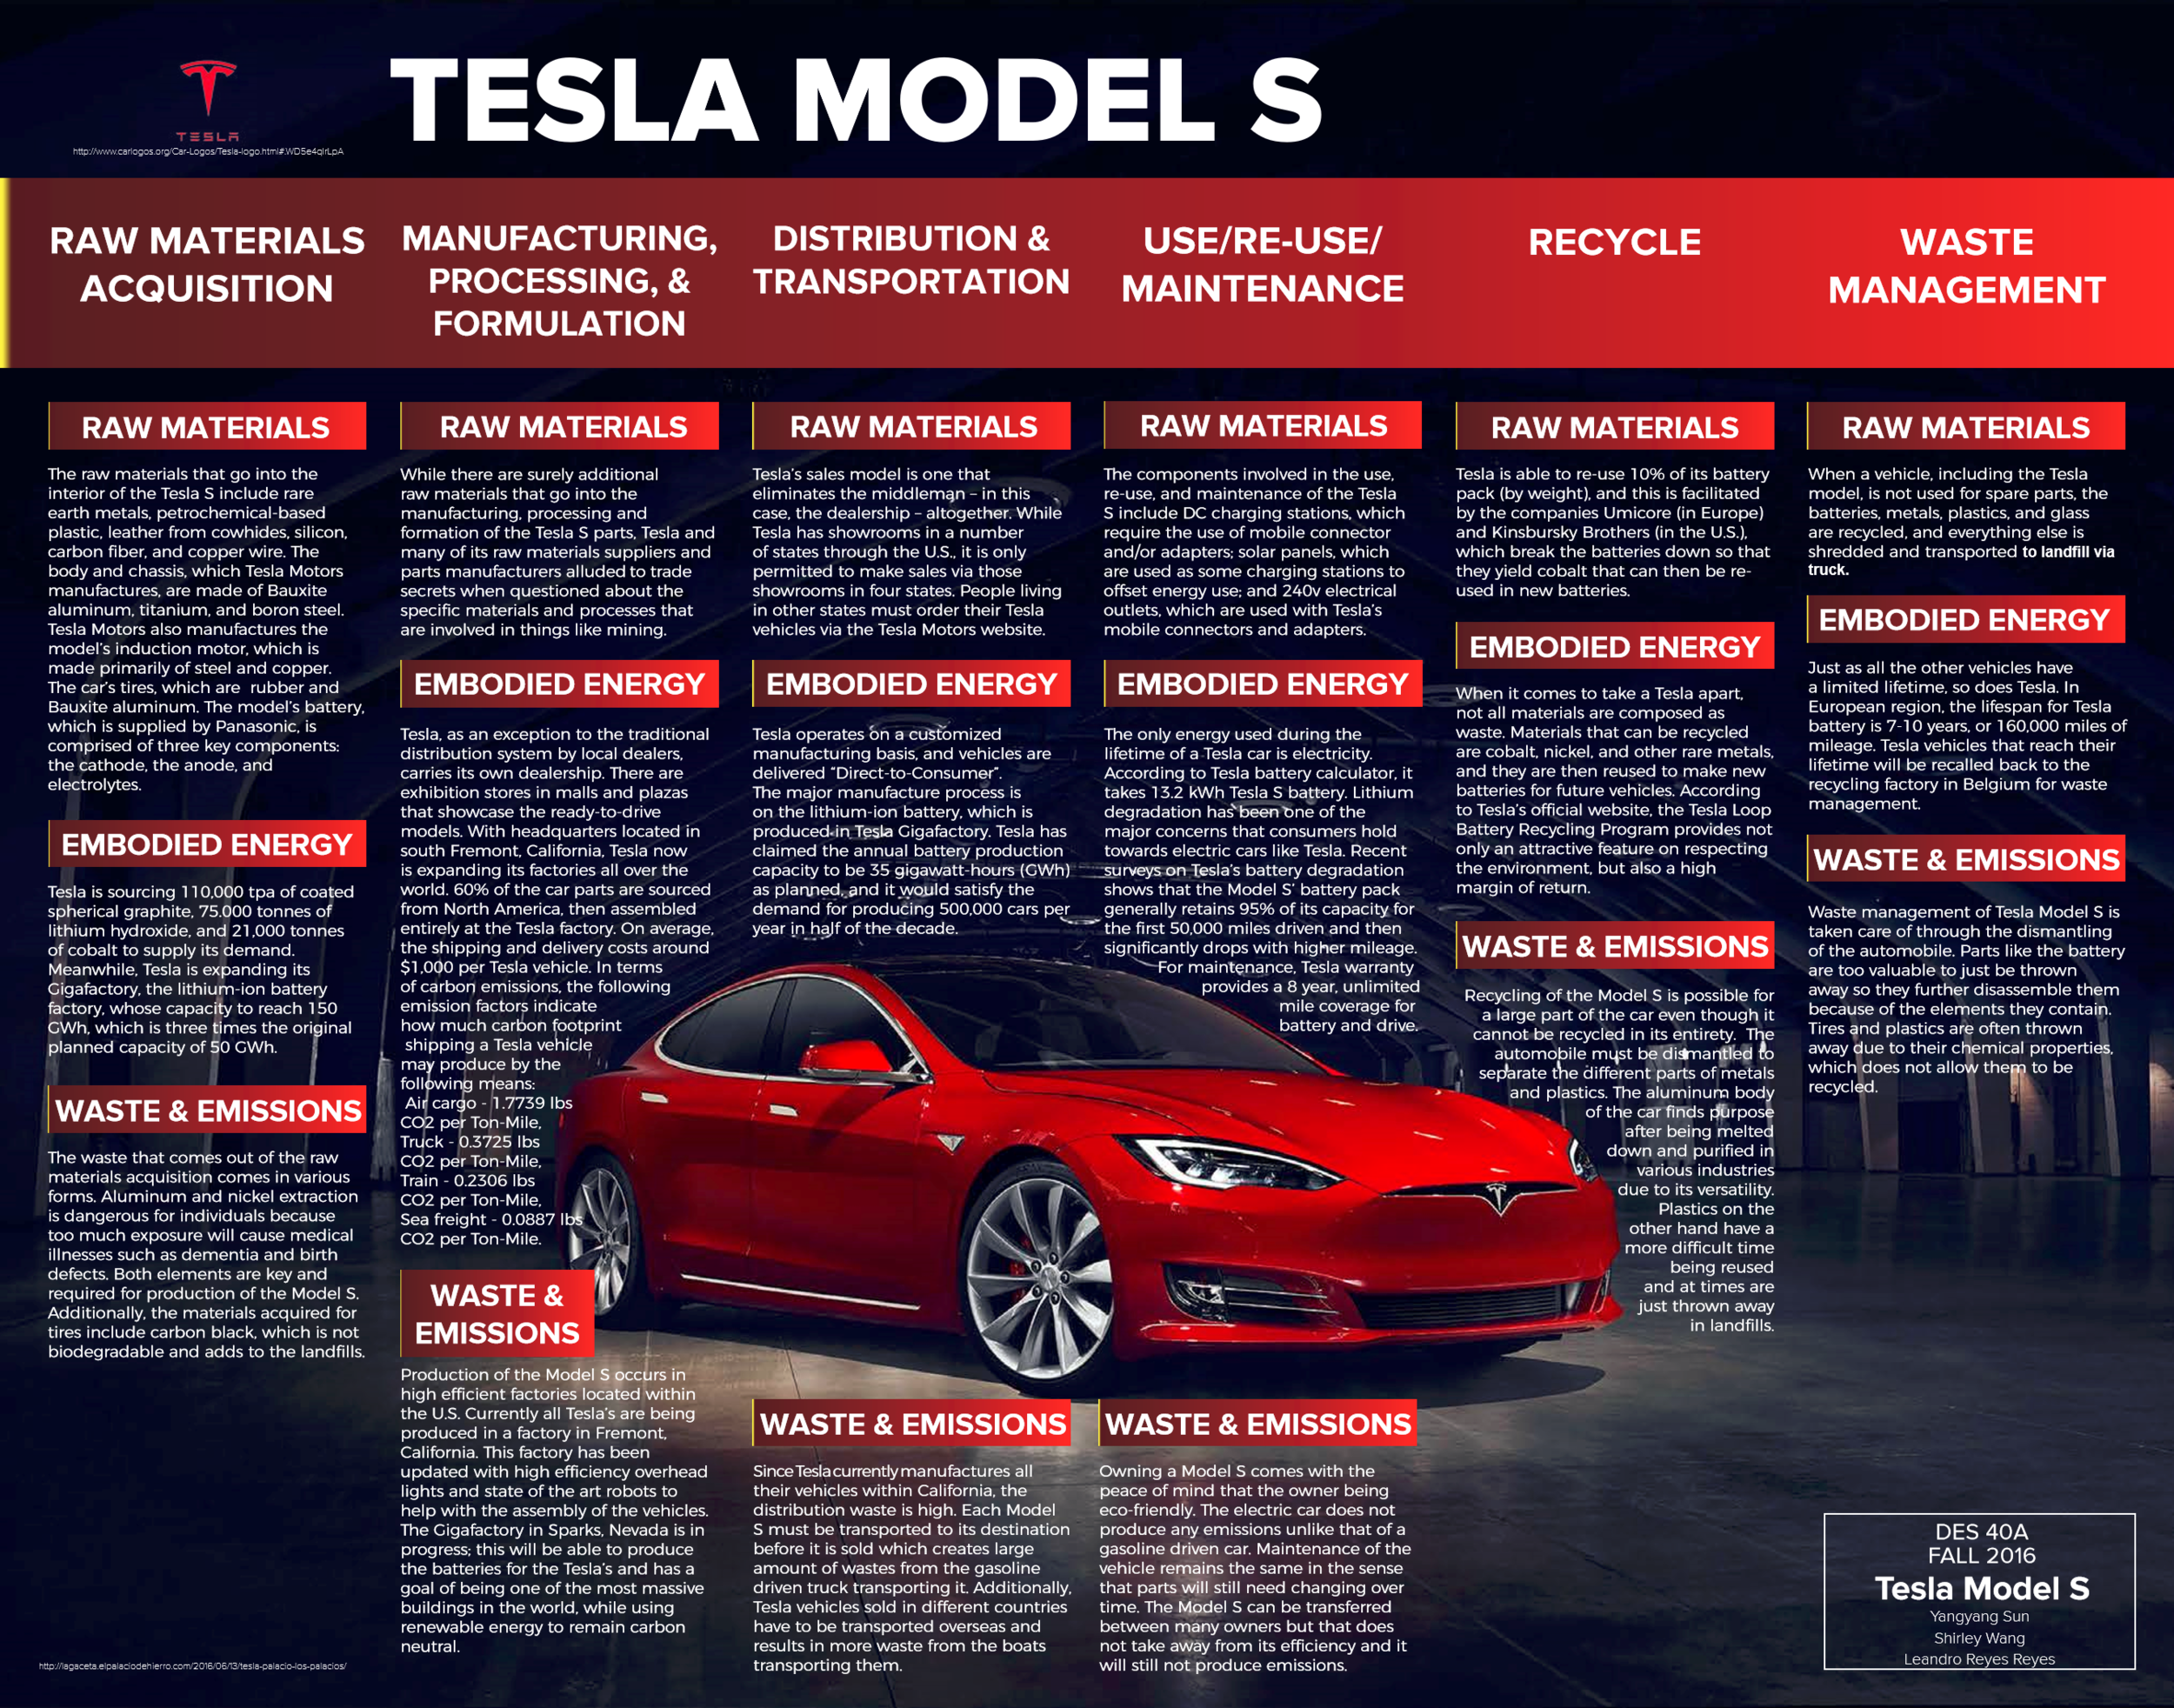 Tesla Model S Design Life Cycle